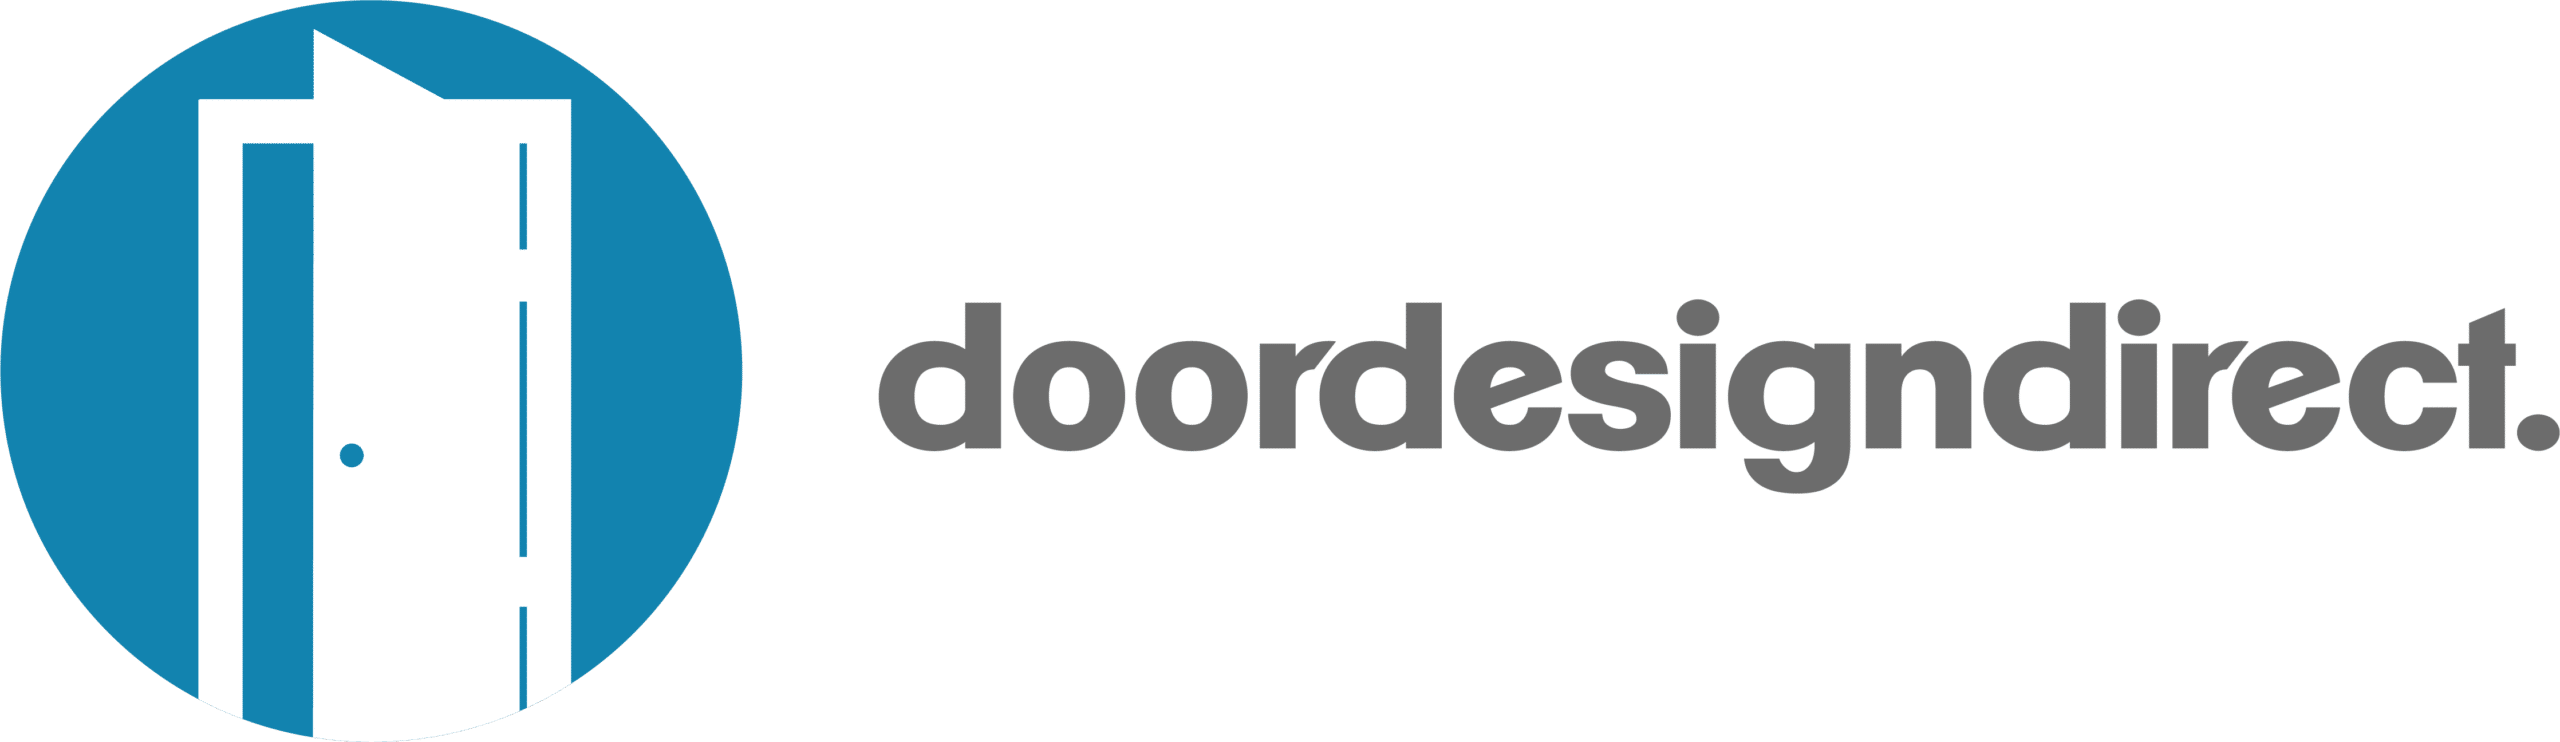 Door Design Direct logo